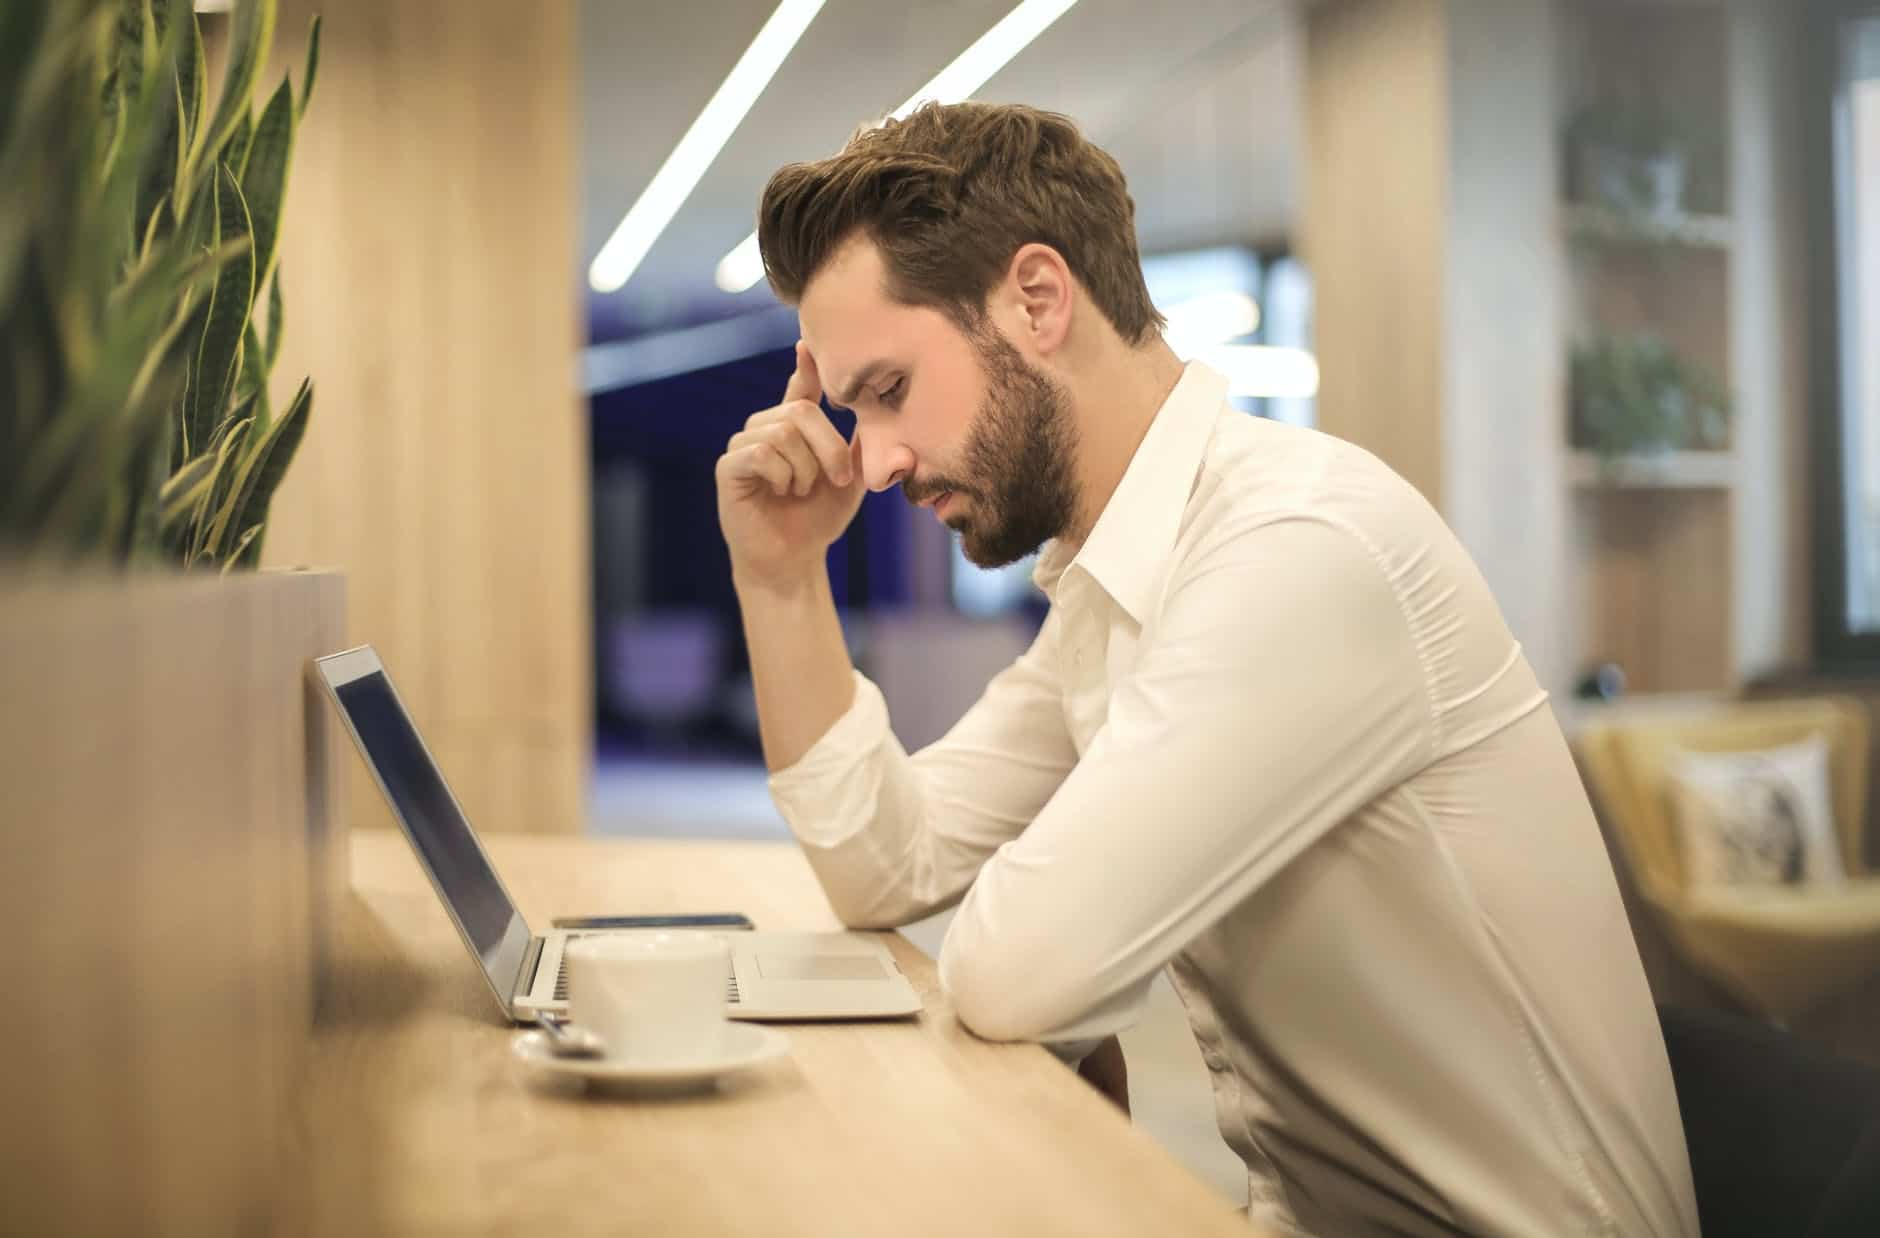 Man Thinking what blogging niche he should focus on